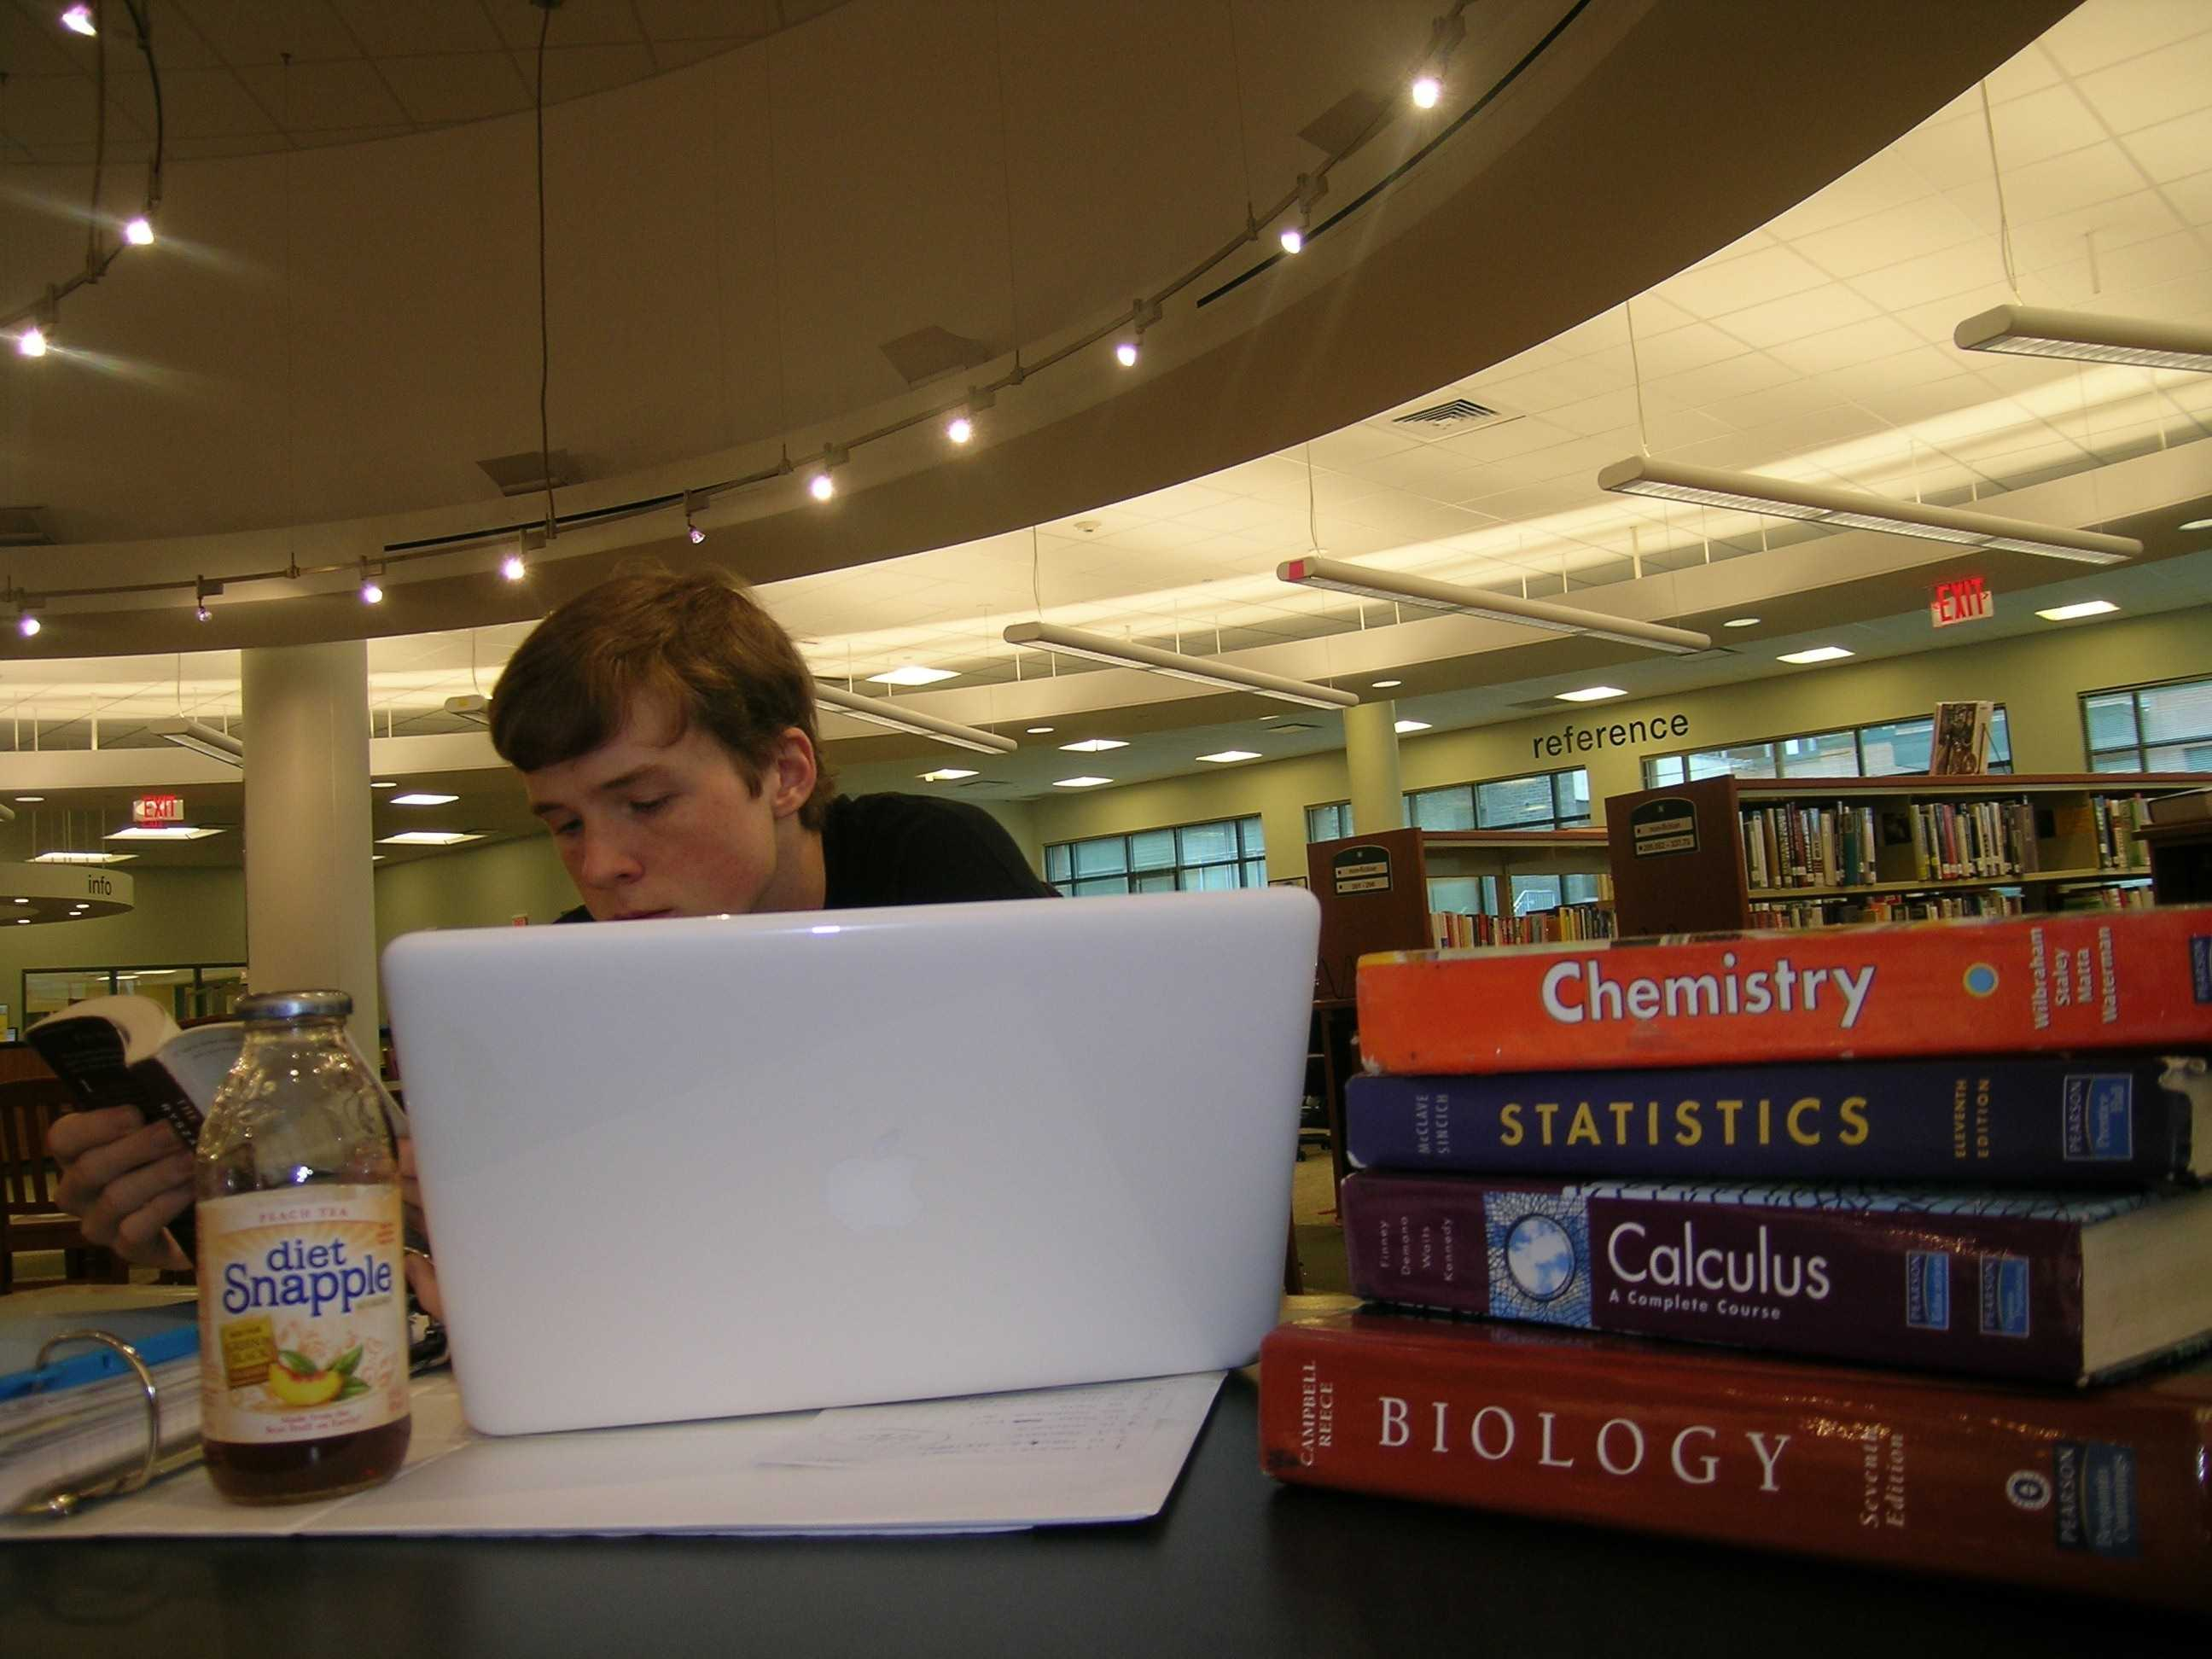 the college credit crisis examining the relevance of ap classes no matter what classes they are taking a mountain of ap textbooks is not an uncommon sight for students like sean christie 12 who study in the library